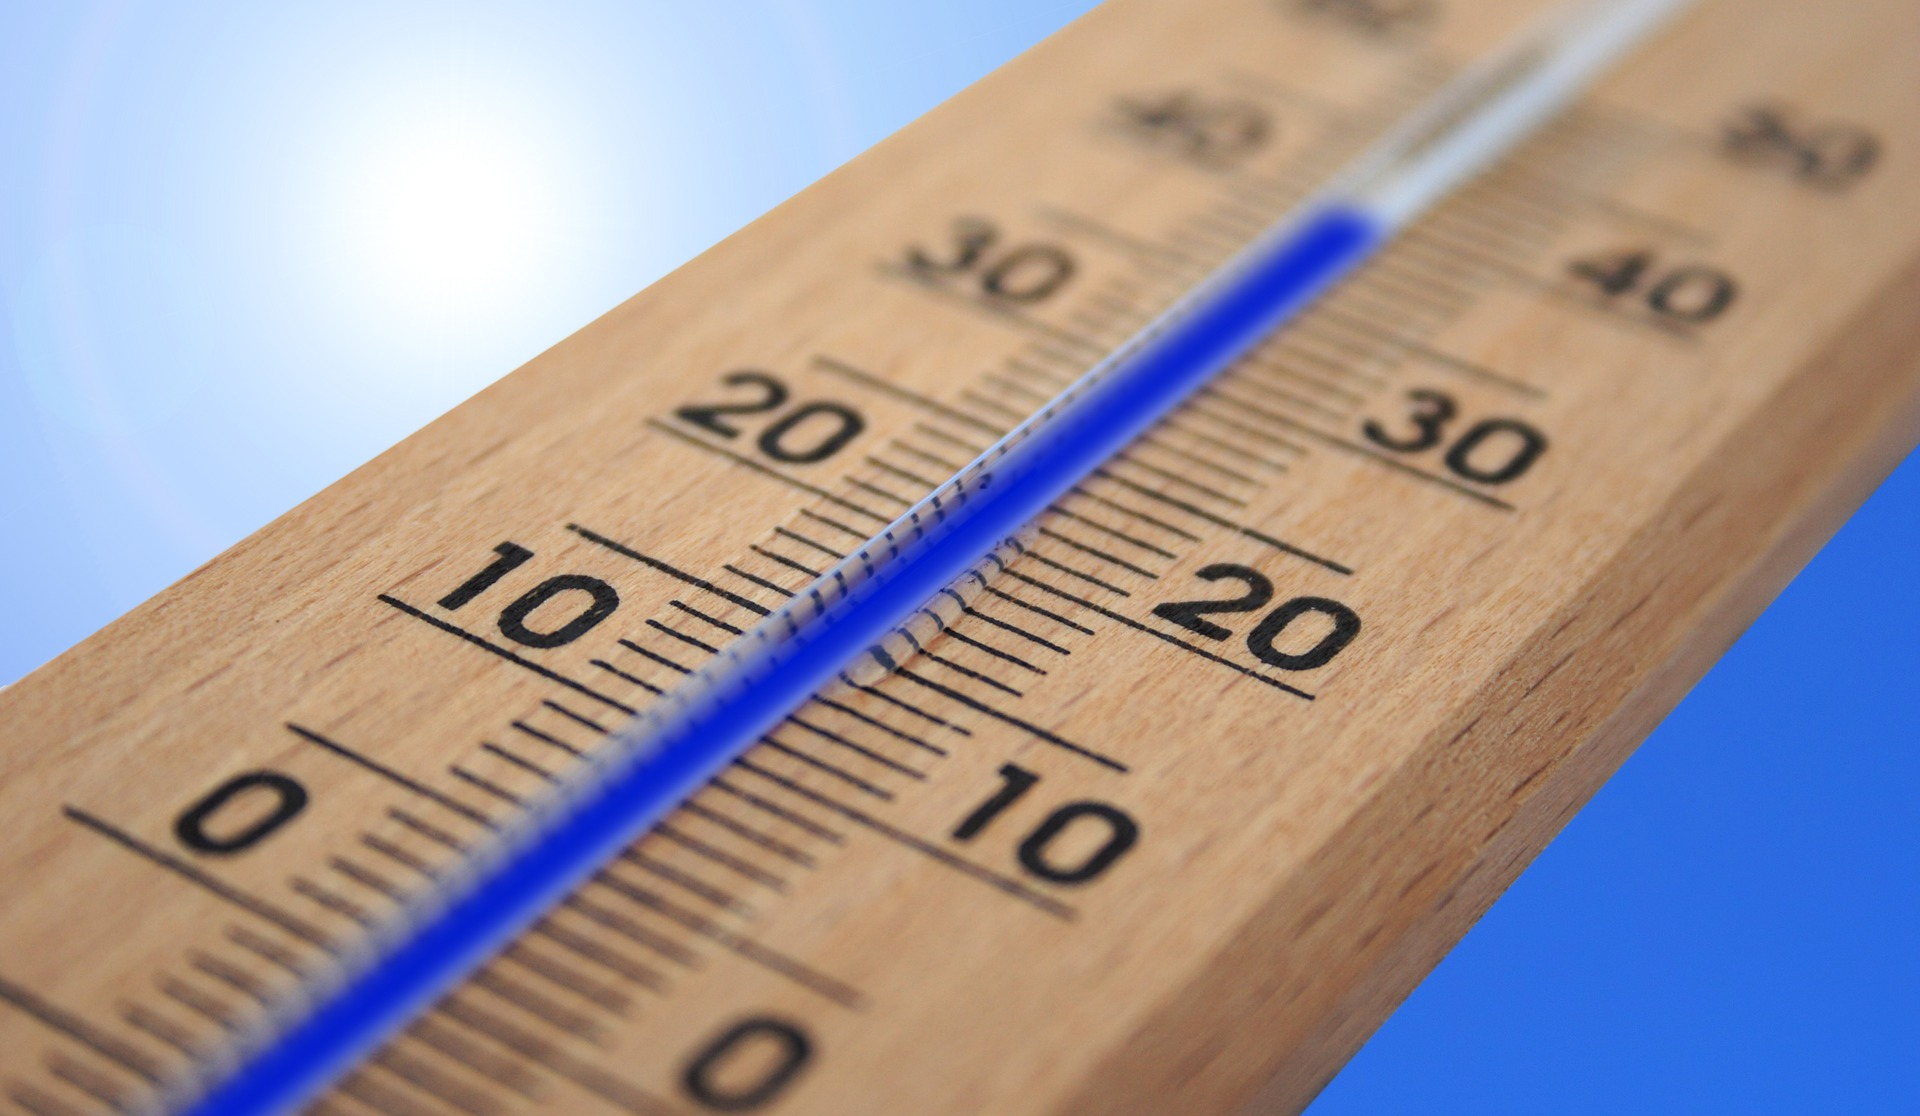 Mercury climbing in a thermometer.